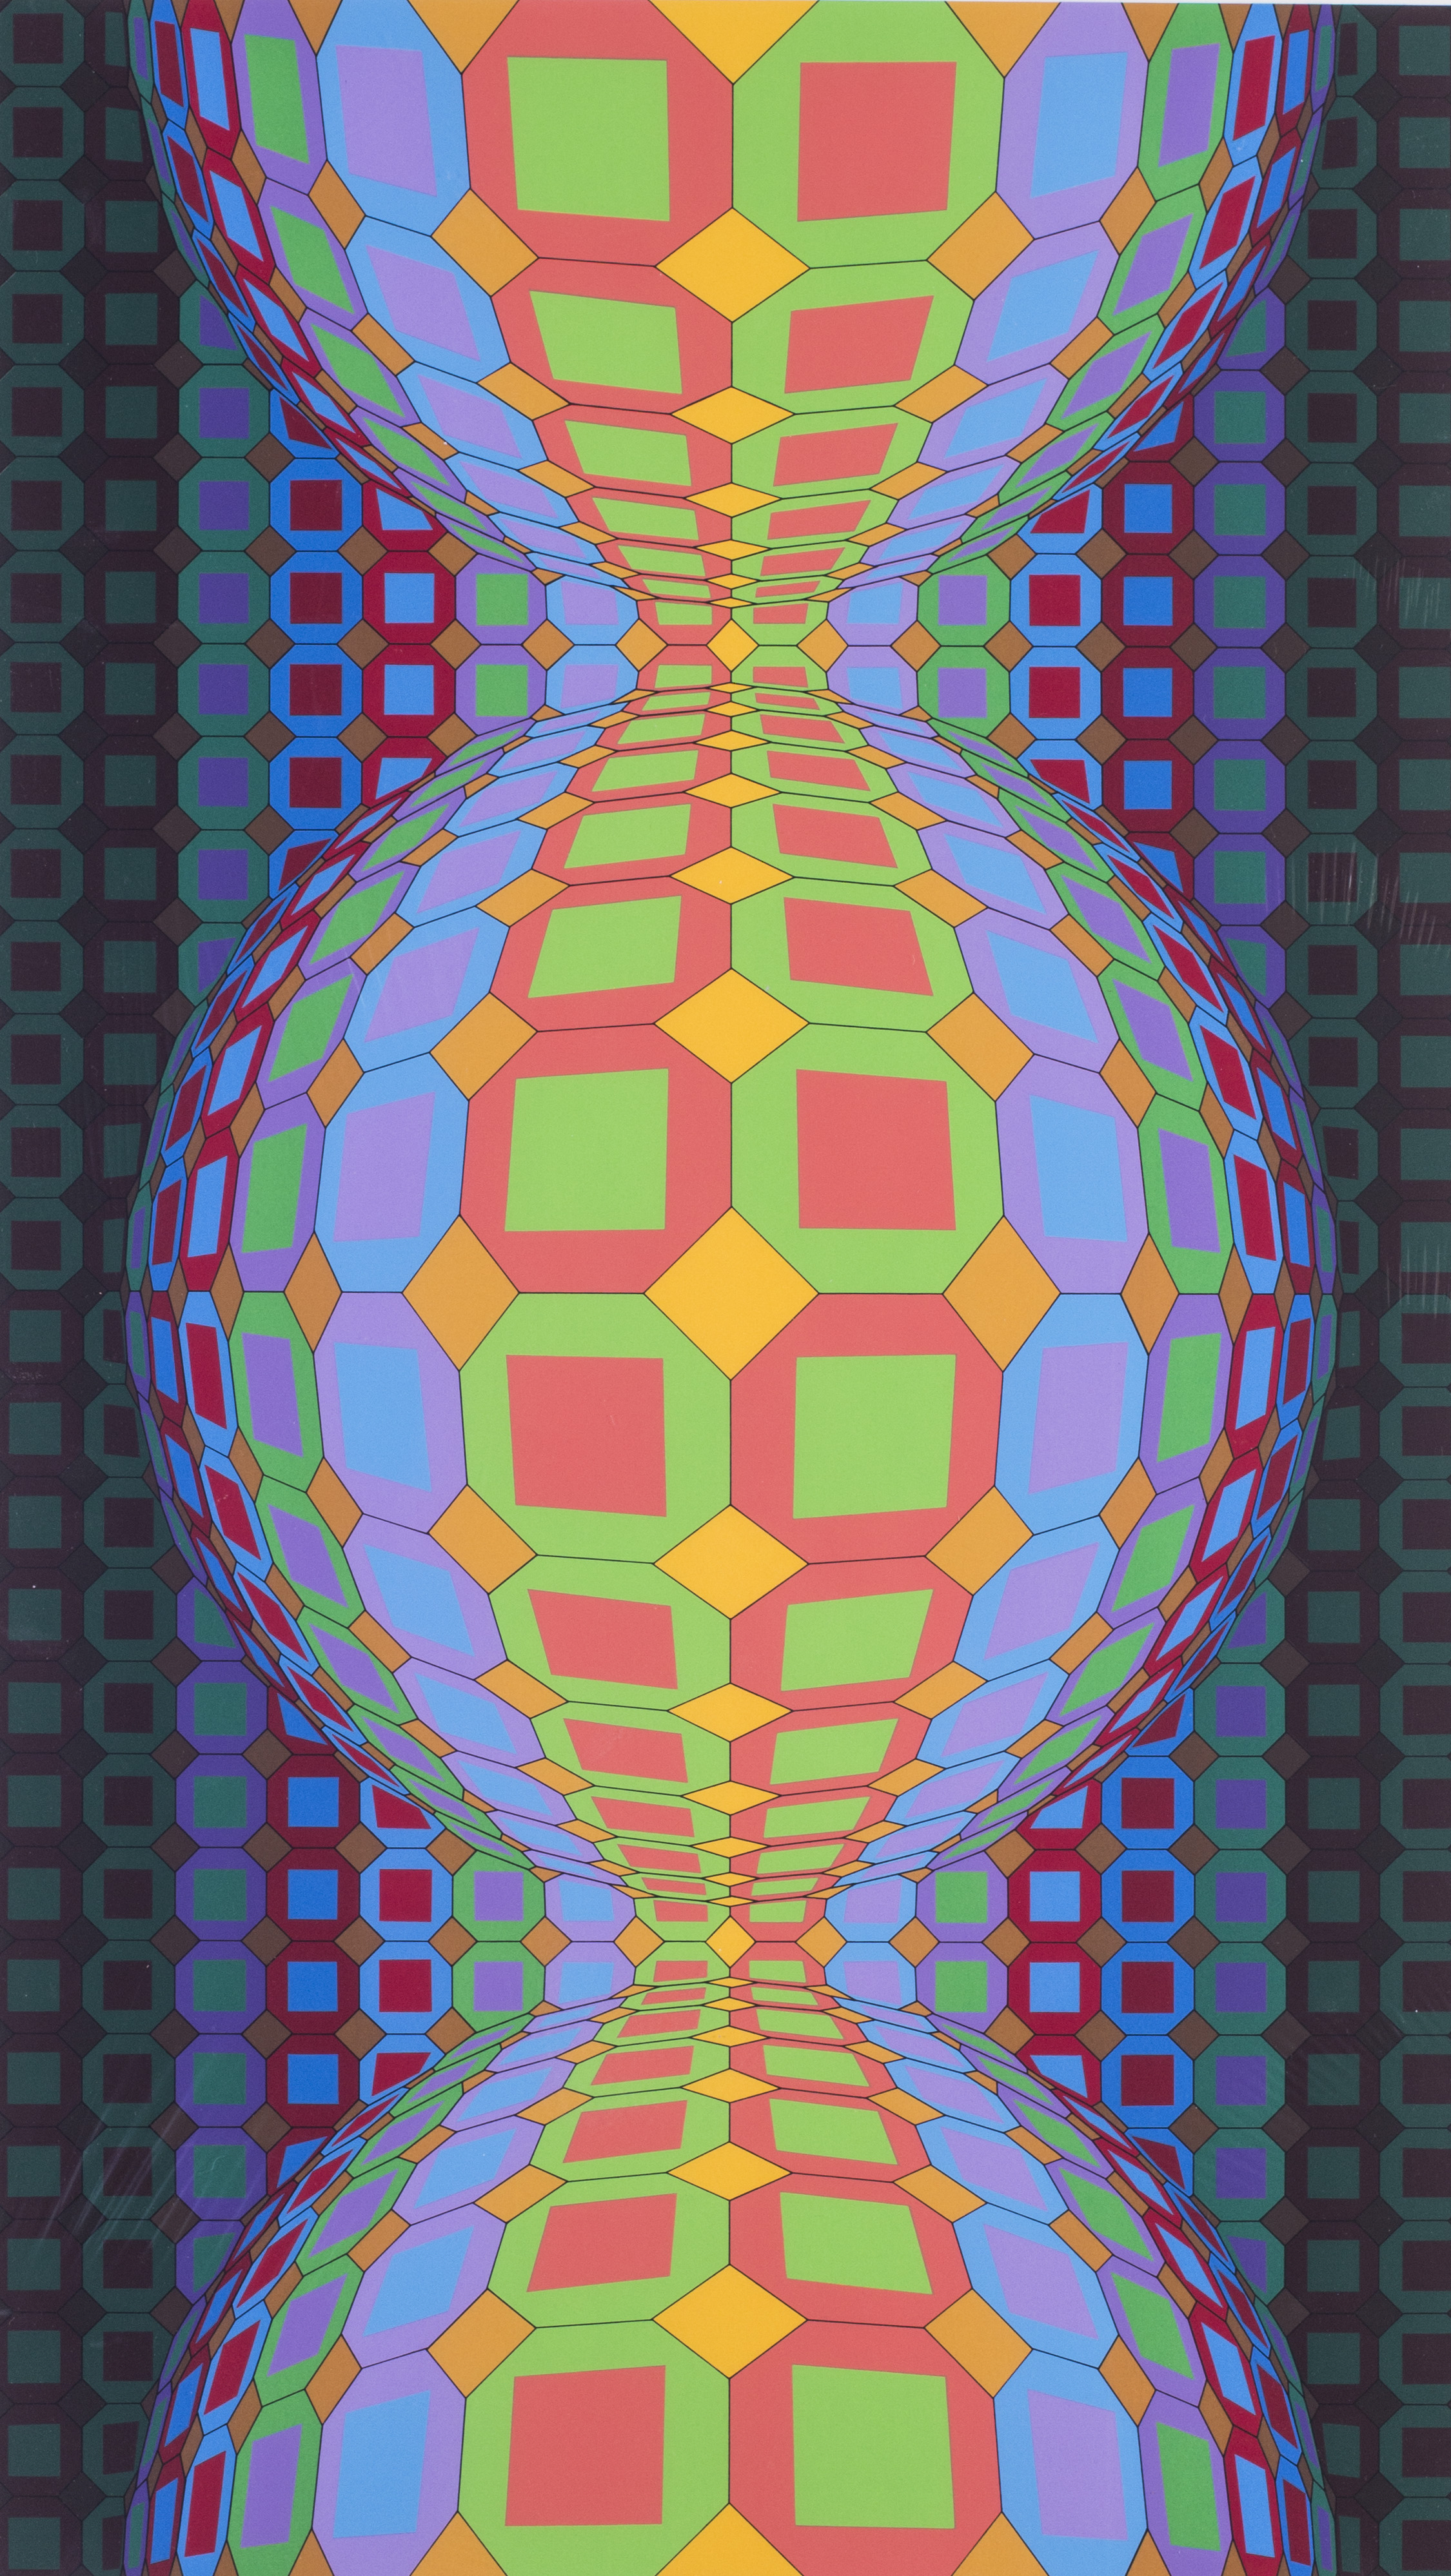 Victor Vasarely   Kaaba II, 1988   Numbered 'F. V. 26 / 60' (lower left) and signed 'Vasarely' (lower right in pencil)  Screen print  40.1/4 x 25.1/4 in. (102.5 x 64 cm.) including margin   SOLD